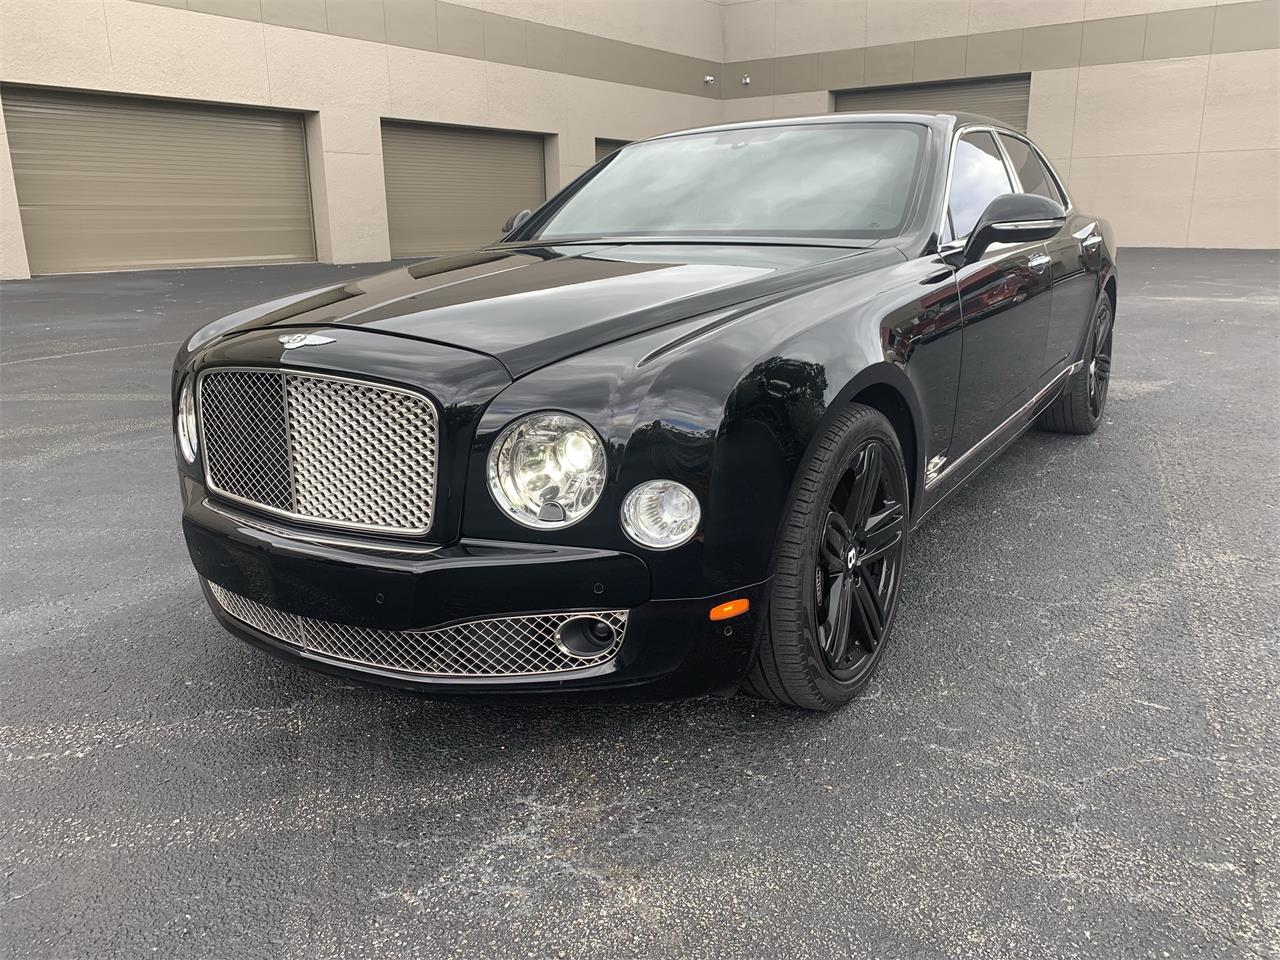 Large Picture of '11 Mulsanne S located in Florida Offered by European Autobody, Inc. - PXPH